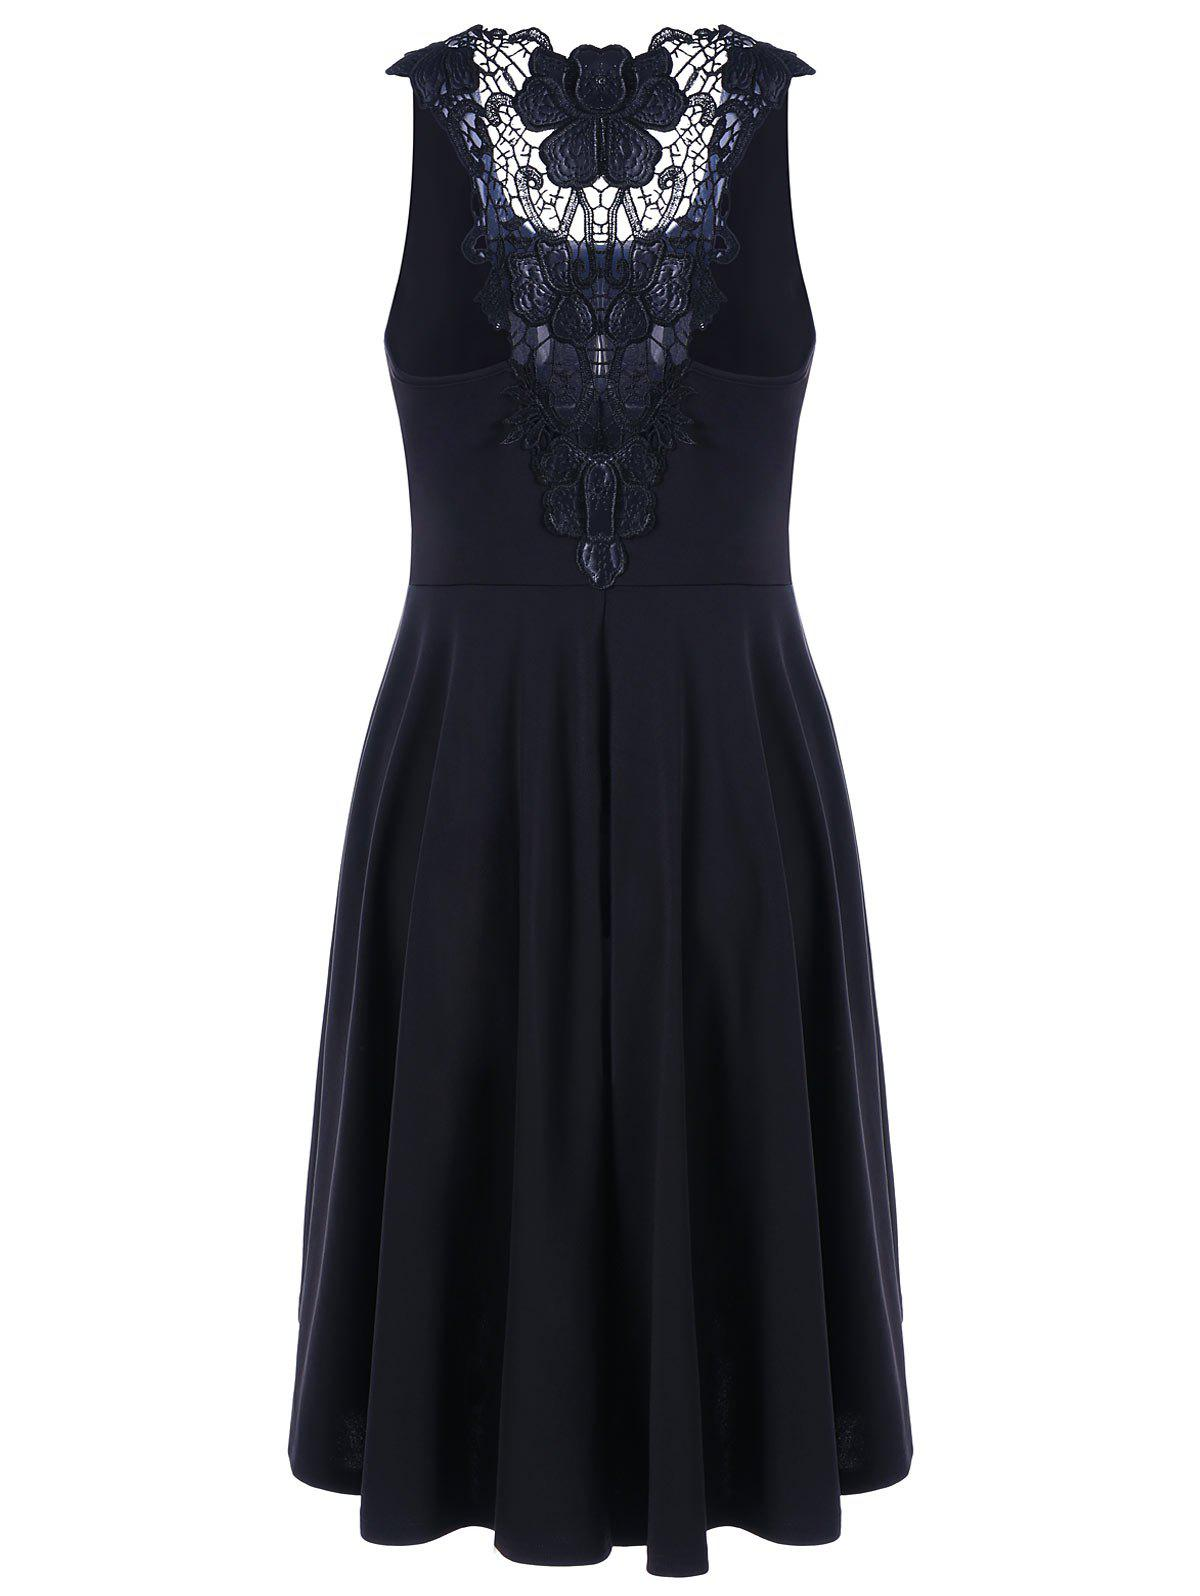 Lace Trim High Low Hem Dress - BLACK XL